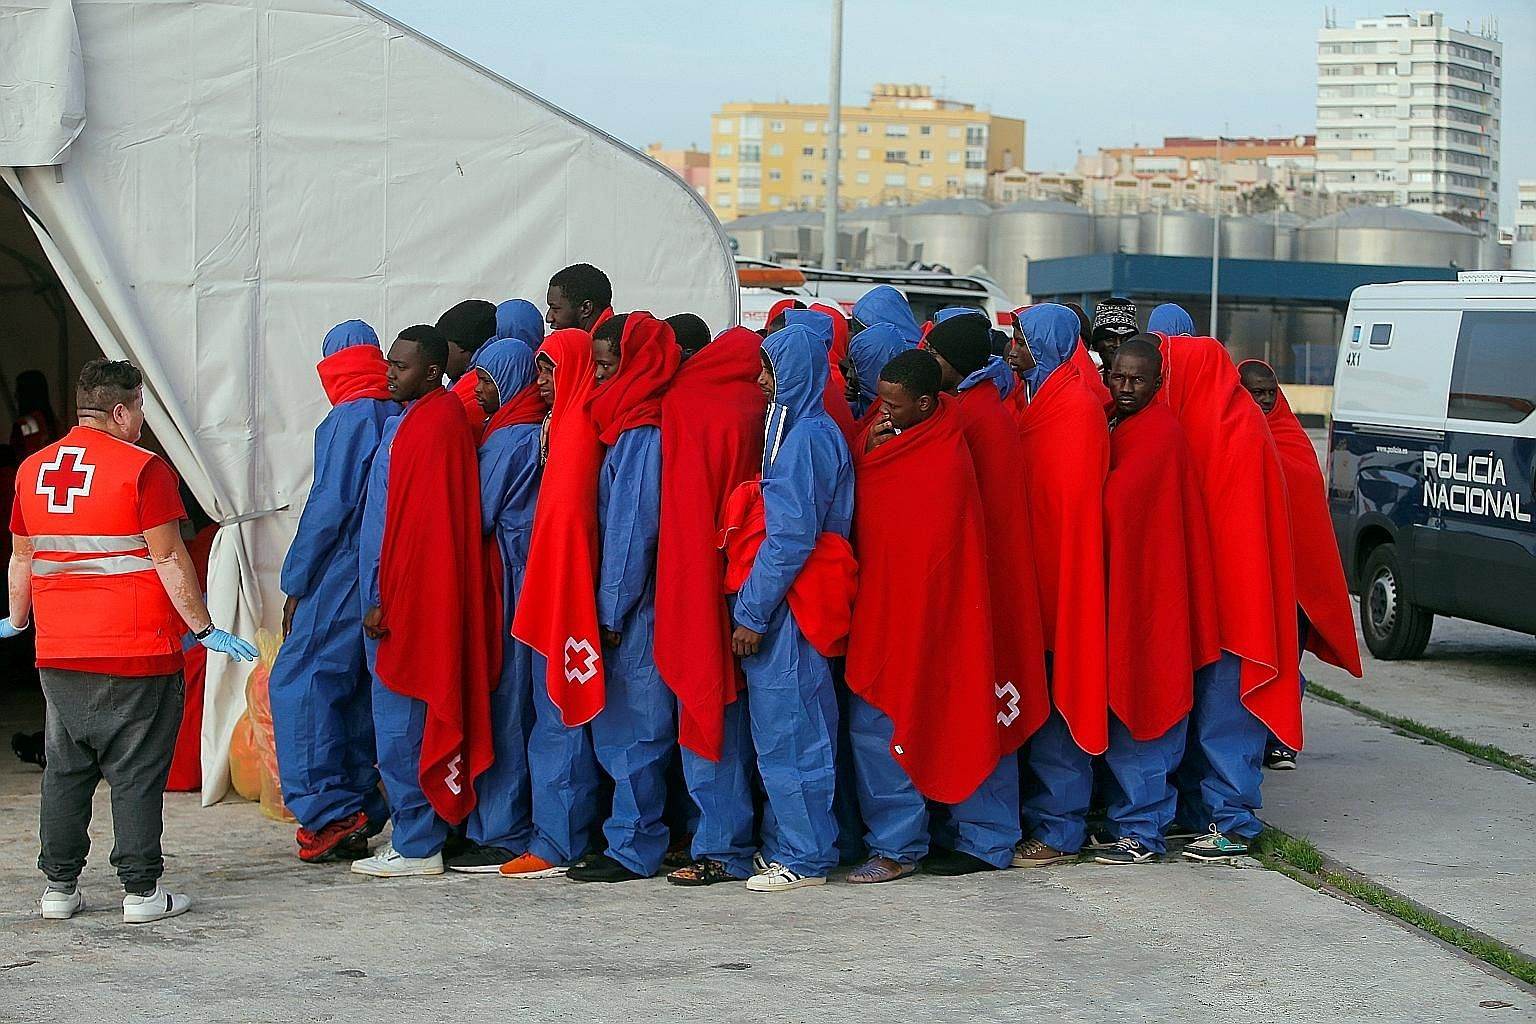 Migrants after disembarking from a rescue boat in Malaga, Spain. Of late, the number of refugee claimants in Europe is down by more than half from 2016 levels. Statistics suggest that even then, the population did not swell with the arrival of refuge